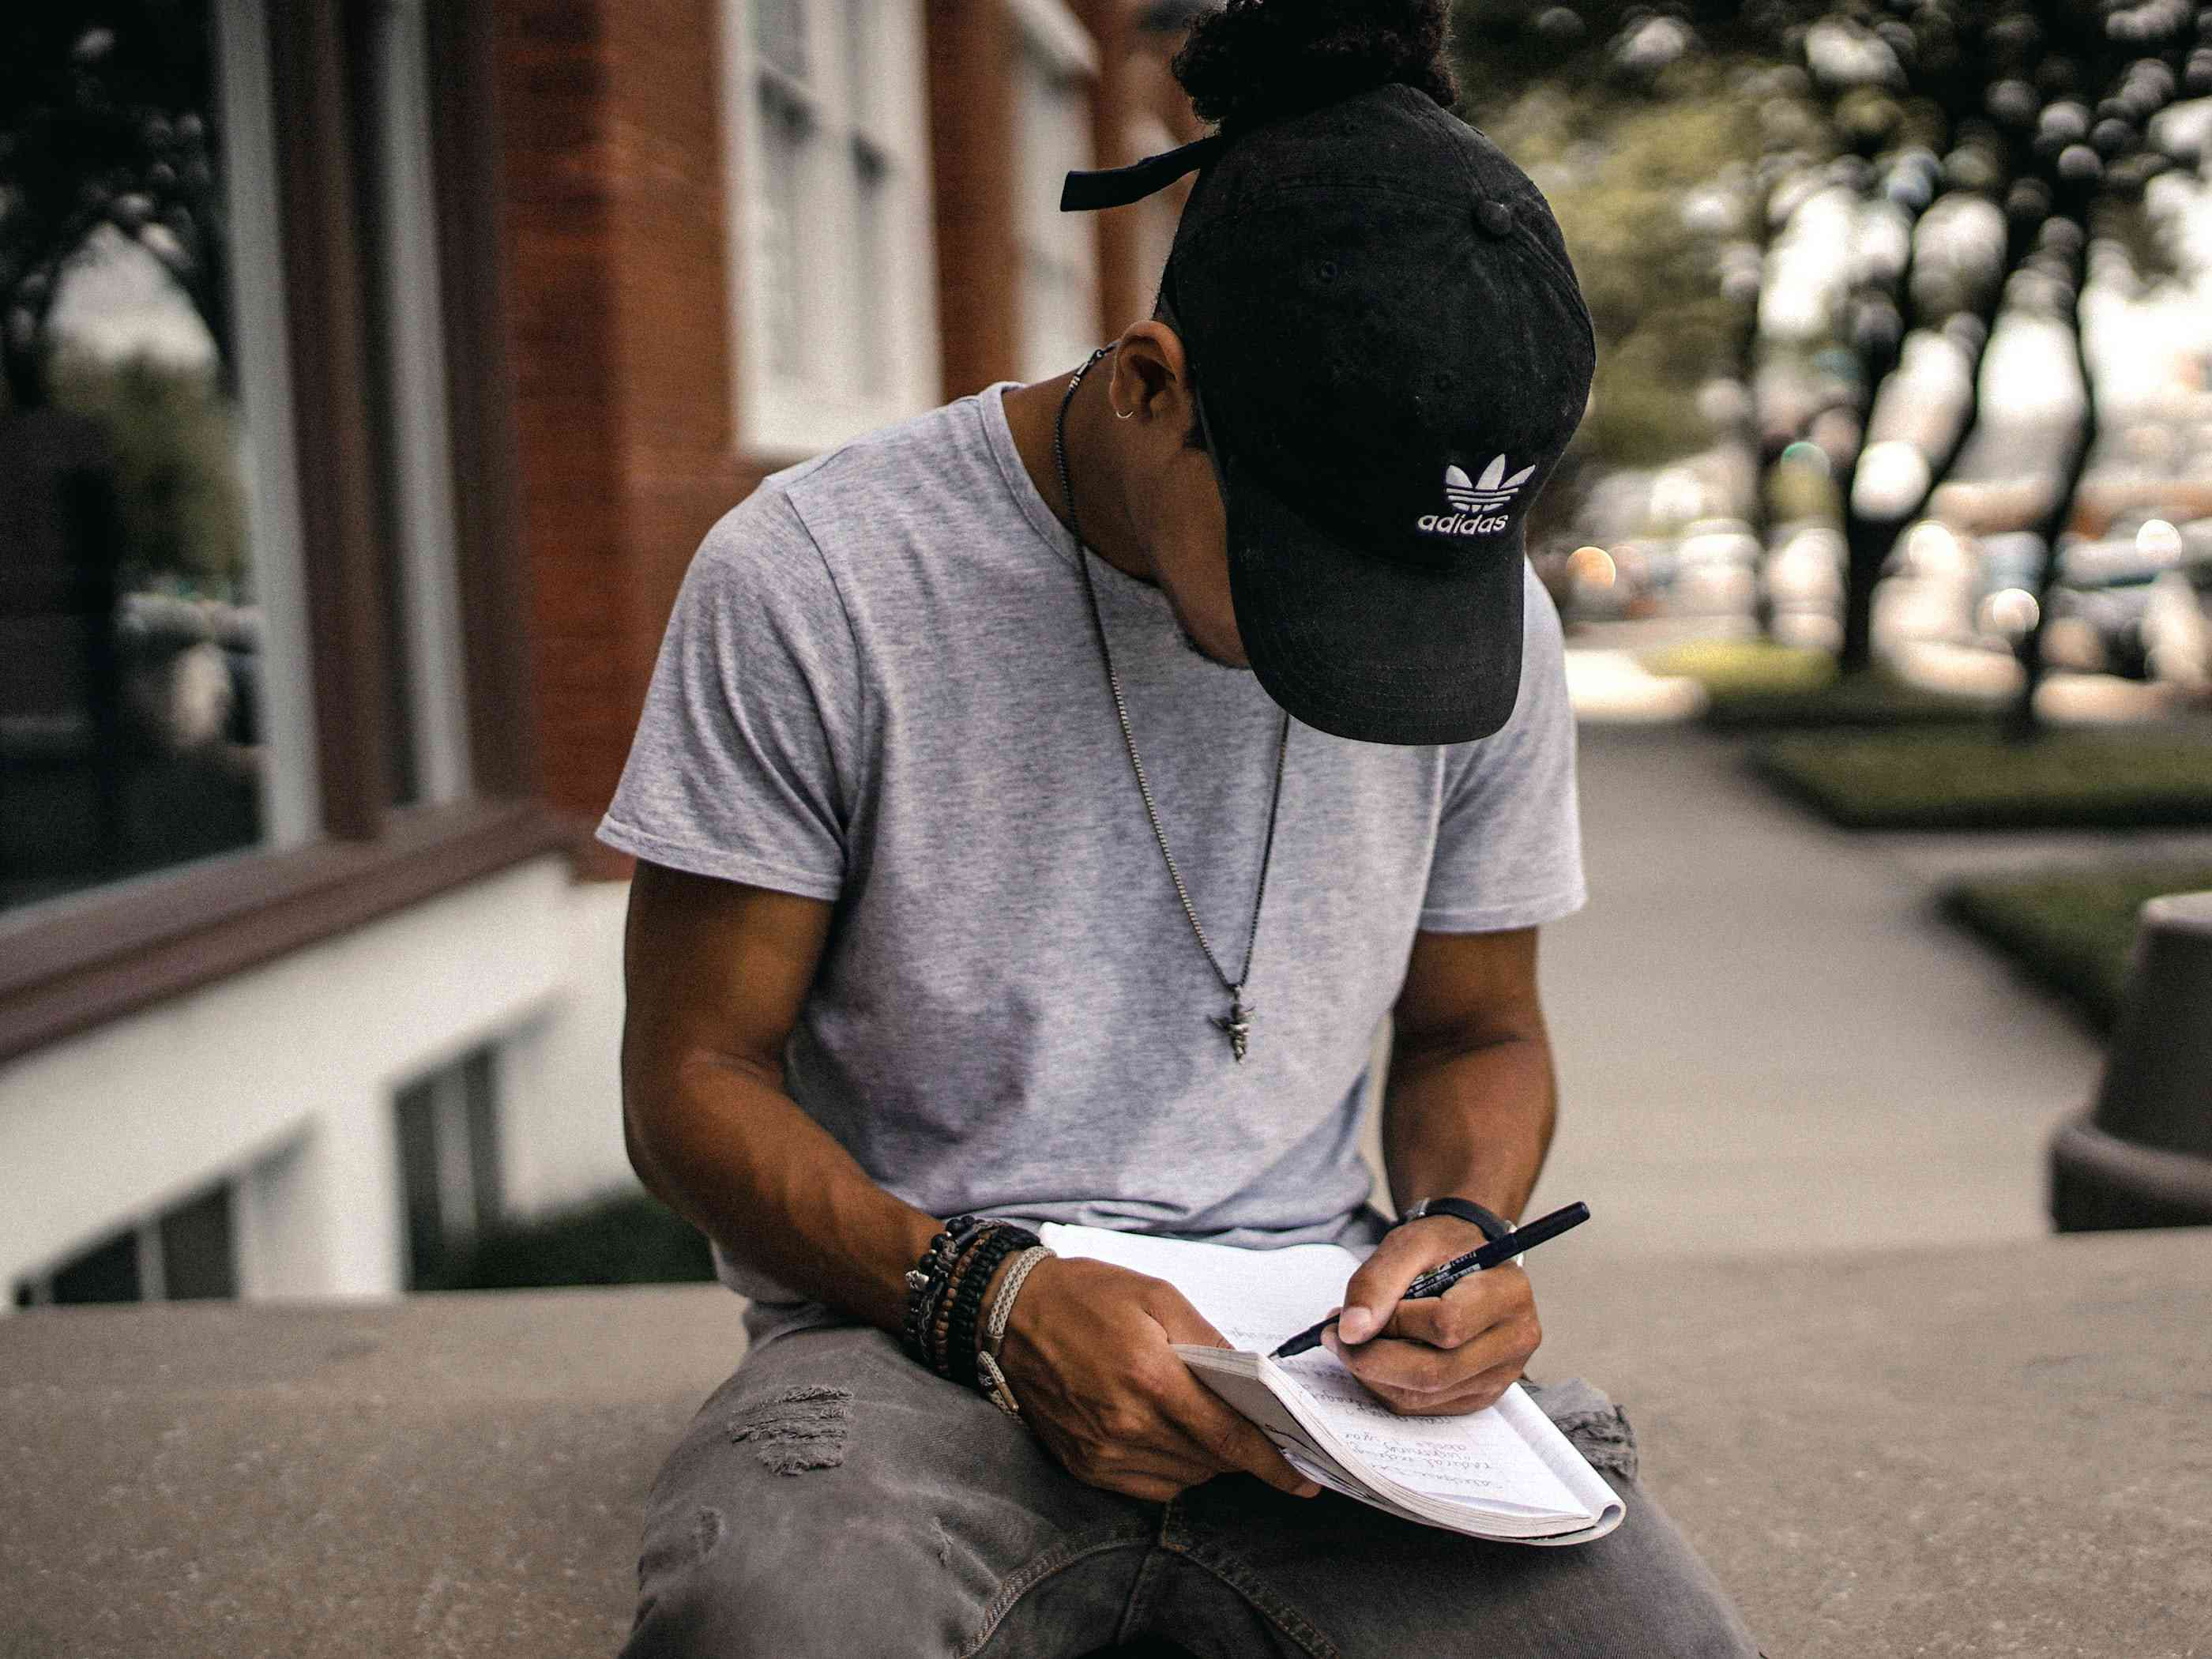 person sitting on a bench writing in a notebook